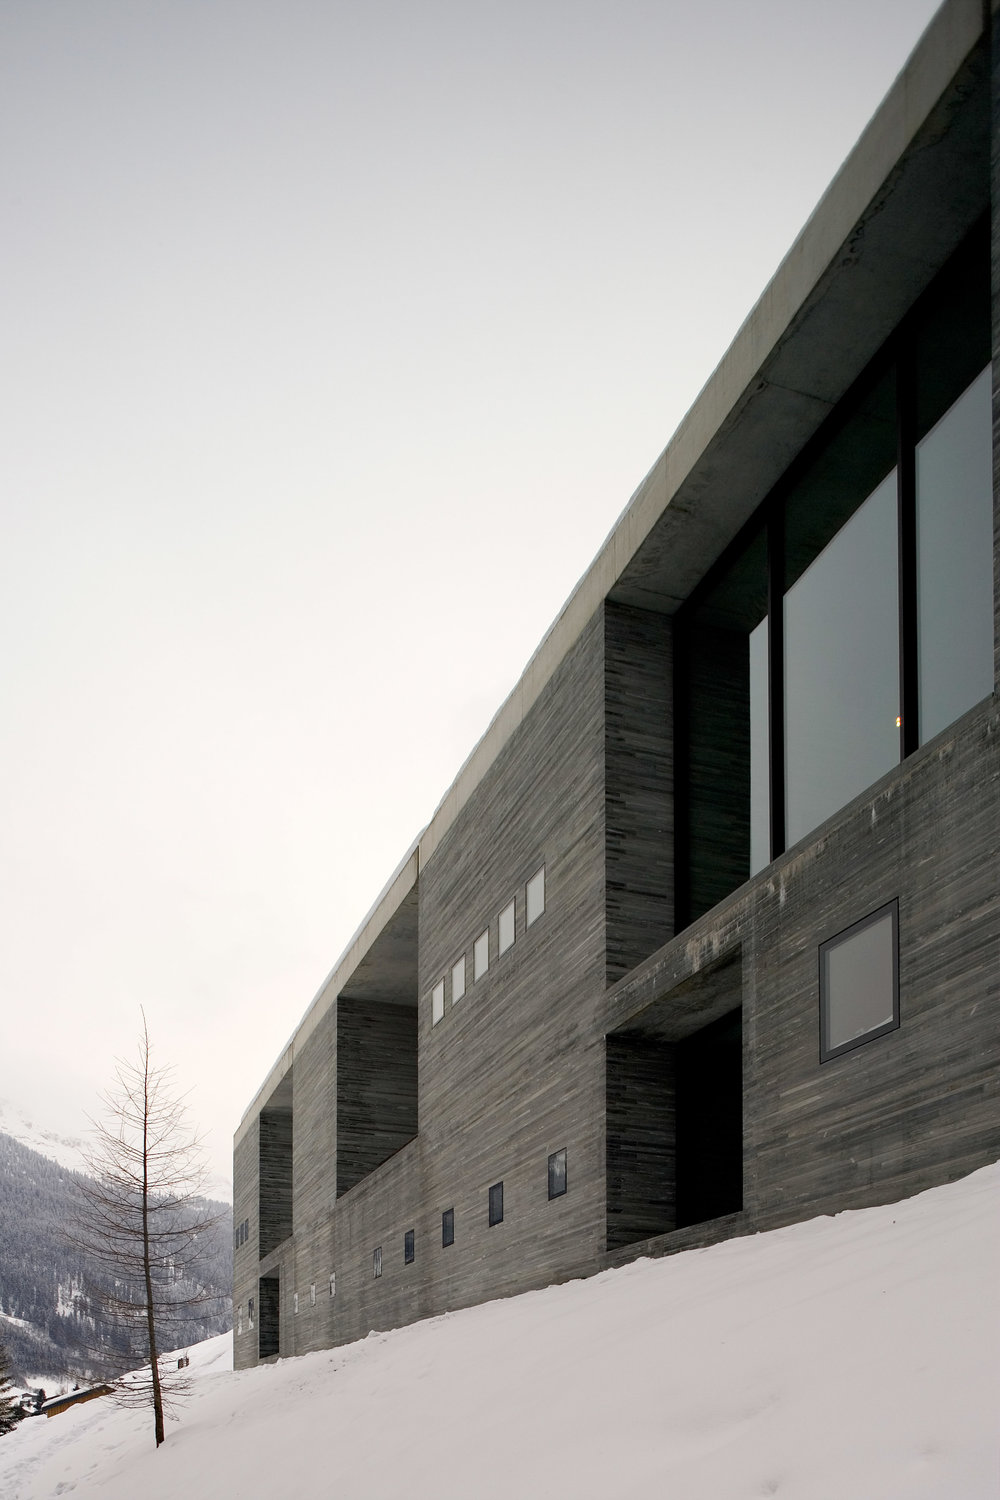 Peter Zumthor's Therme Vals photographed by Fernando Guerra